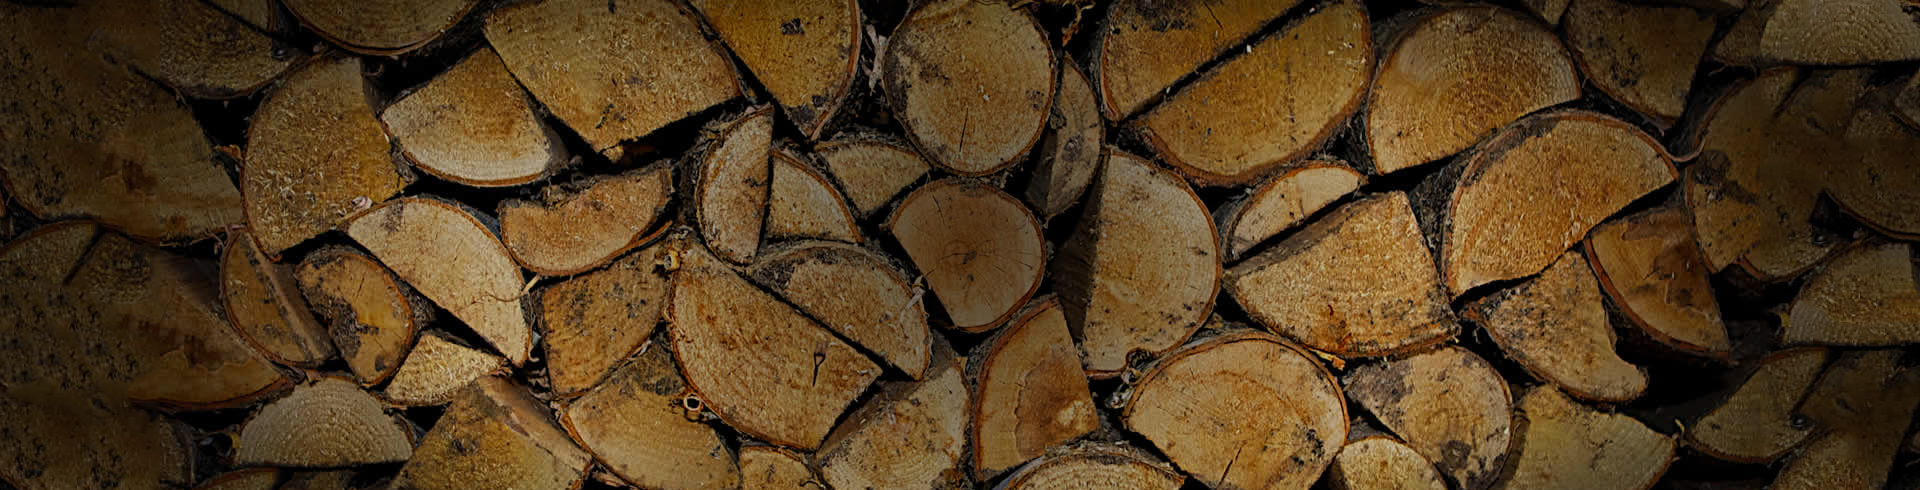 ECO-FRIENDLY KILN-DRIED FIREWOOD